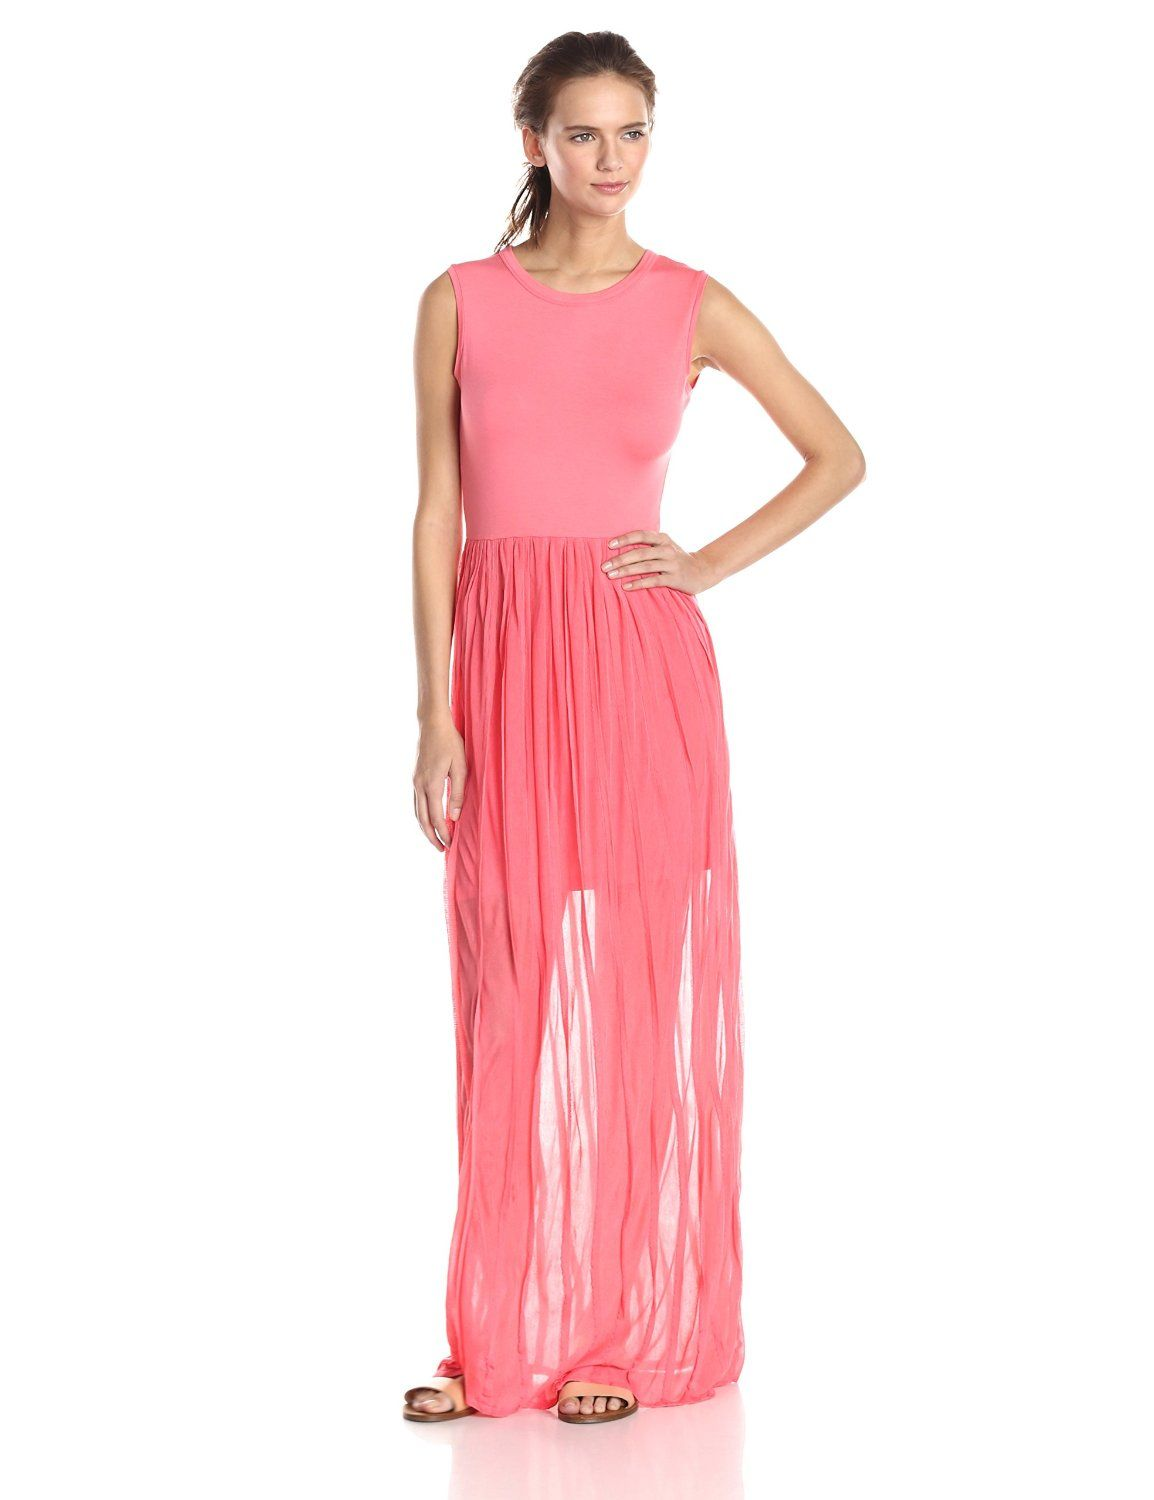 Carnival Ruffle Sleeveless Maxi Dress by French Connection